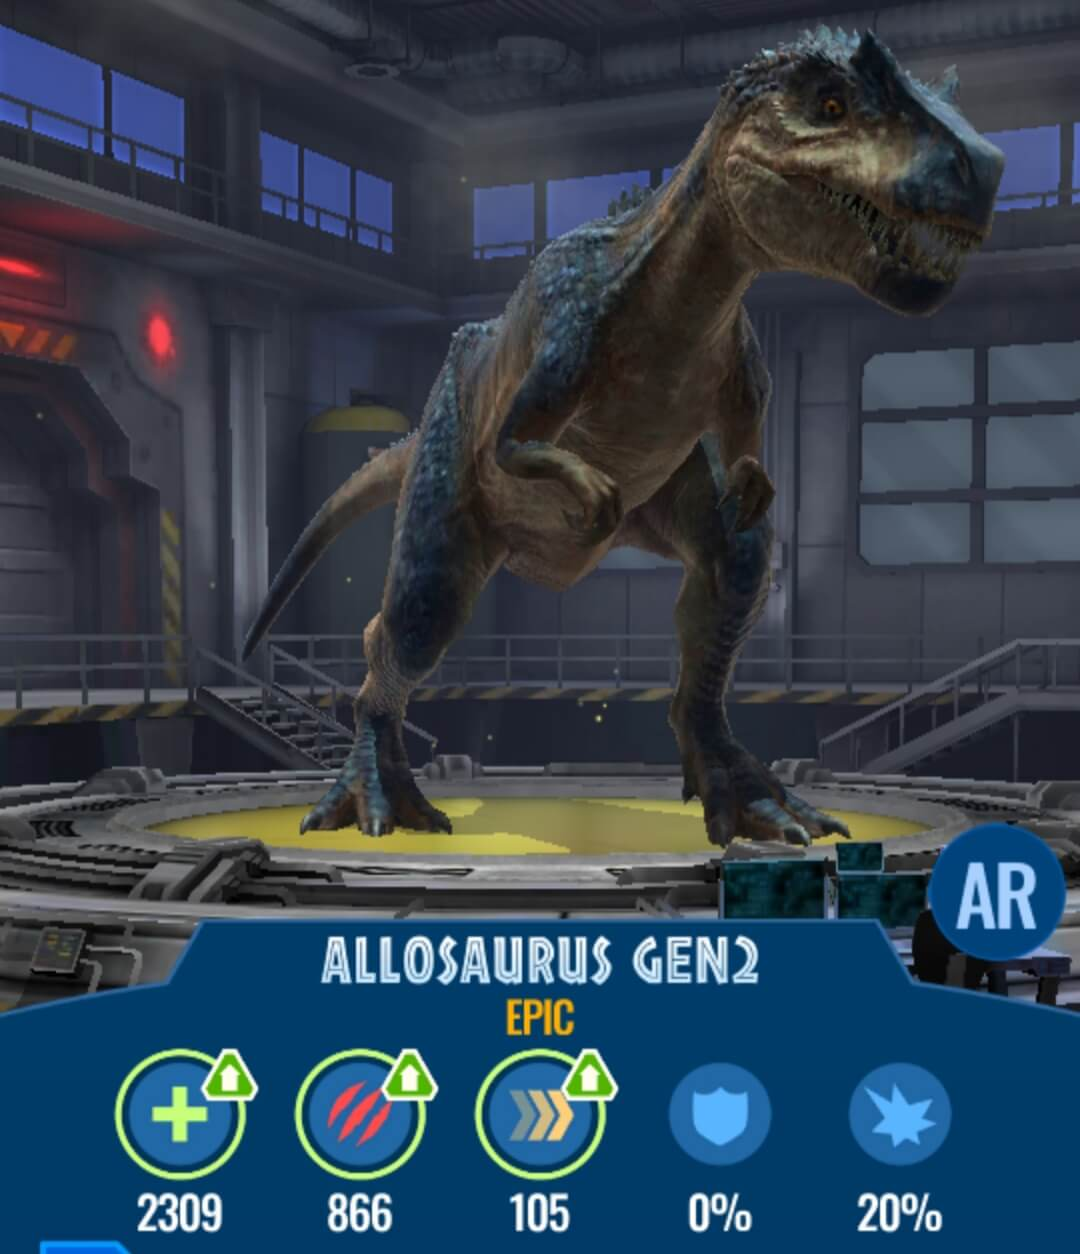 New Dinos Released in the Wild! Allosaurus Gen2 and